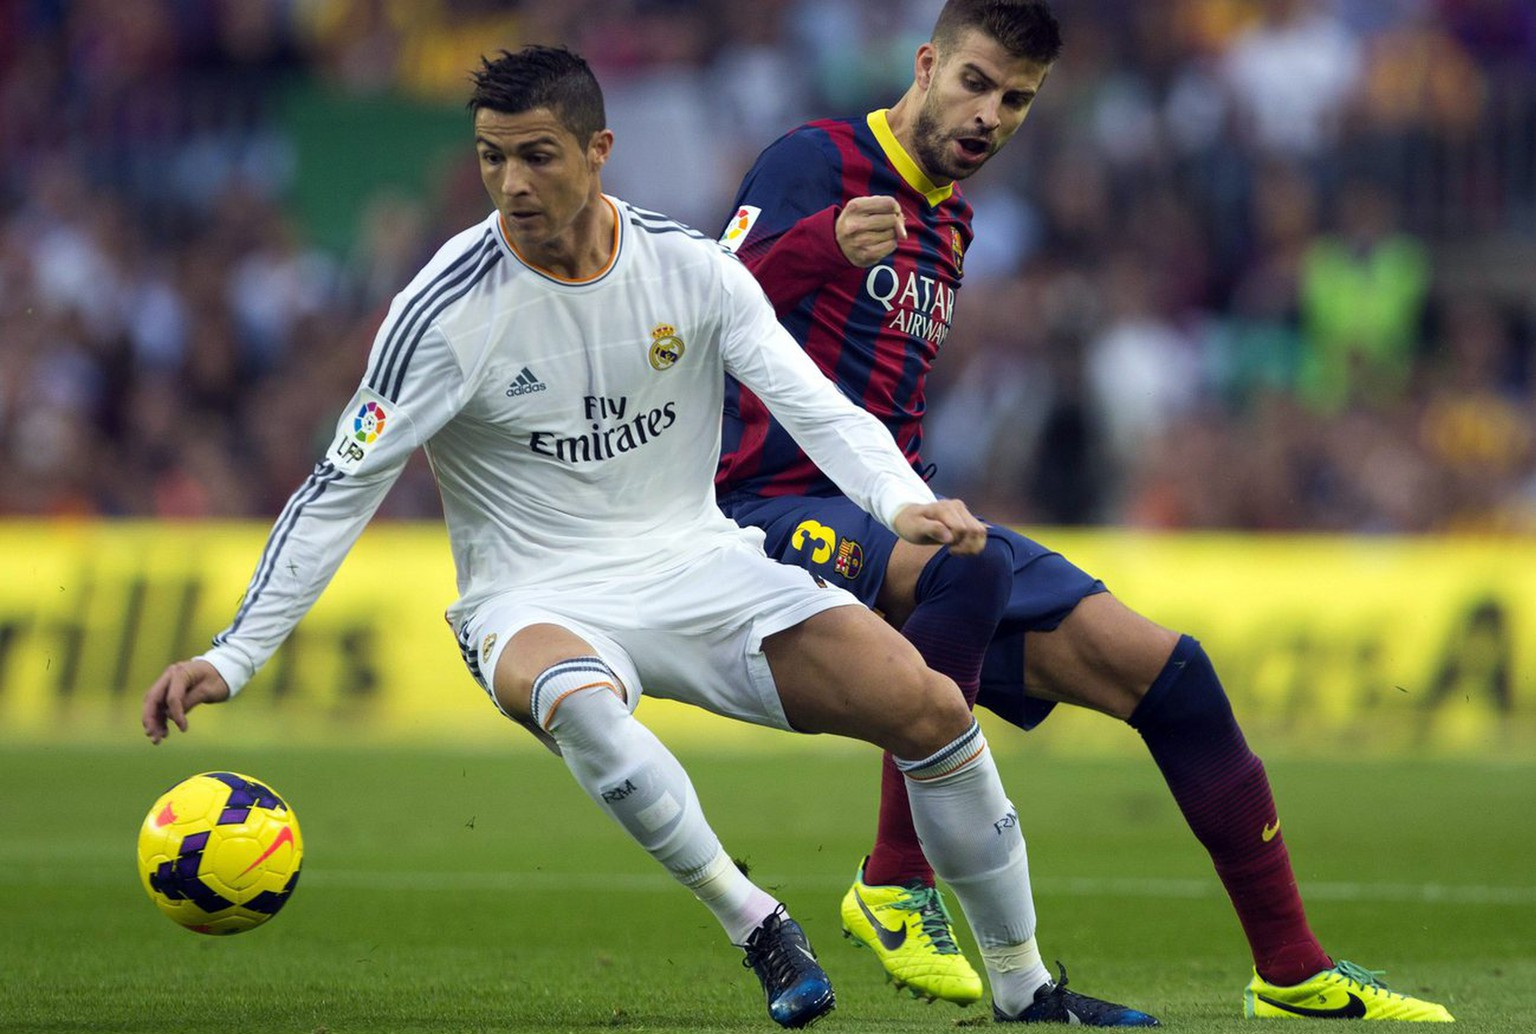 epa03925664 Real Madrid's Cristiano Ronaldo (L) in action agaisnt FC Barcelona's Gerard Pique (R) during the Spanish Primera Division league soccer match between Barcelona and Real madrid at Camp Nou stadium in Barcelona, Spain, 26 October 2013.  EPA/Alejandro Garcia